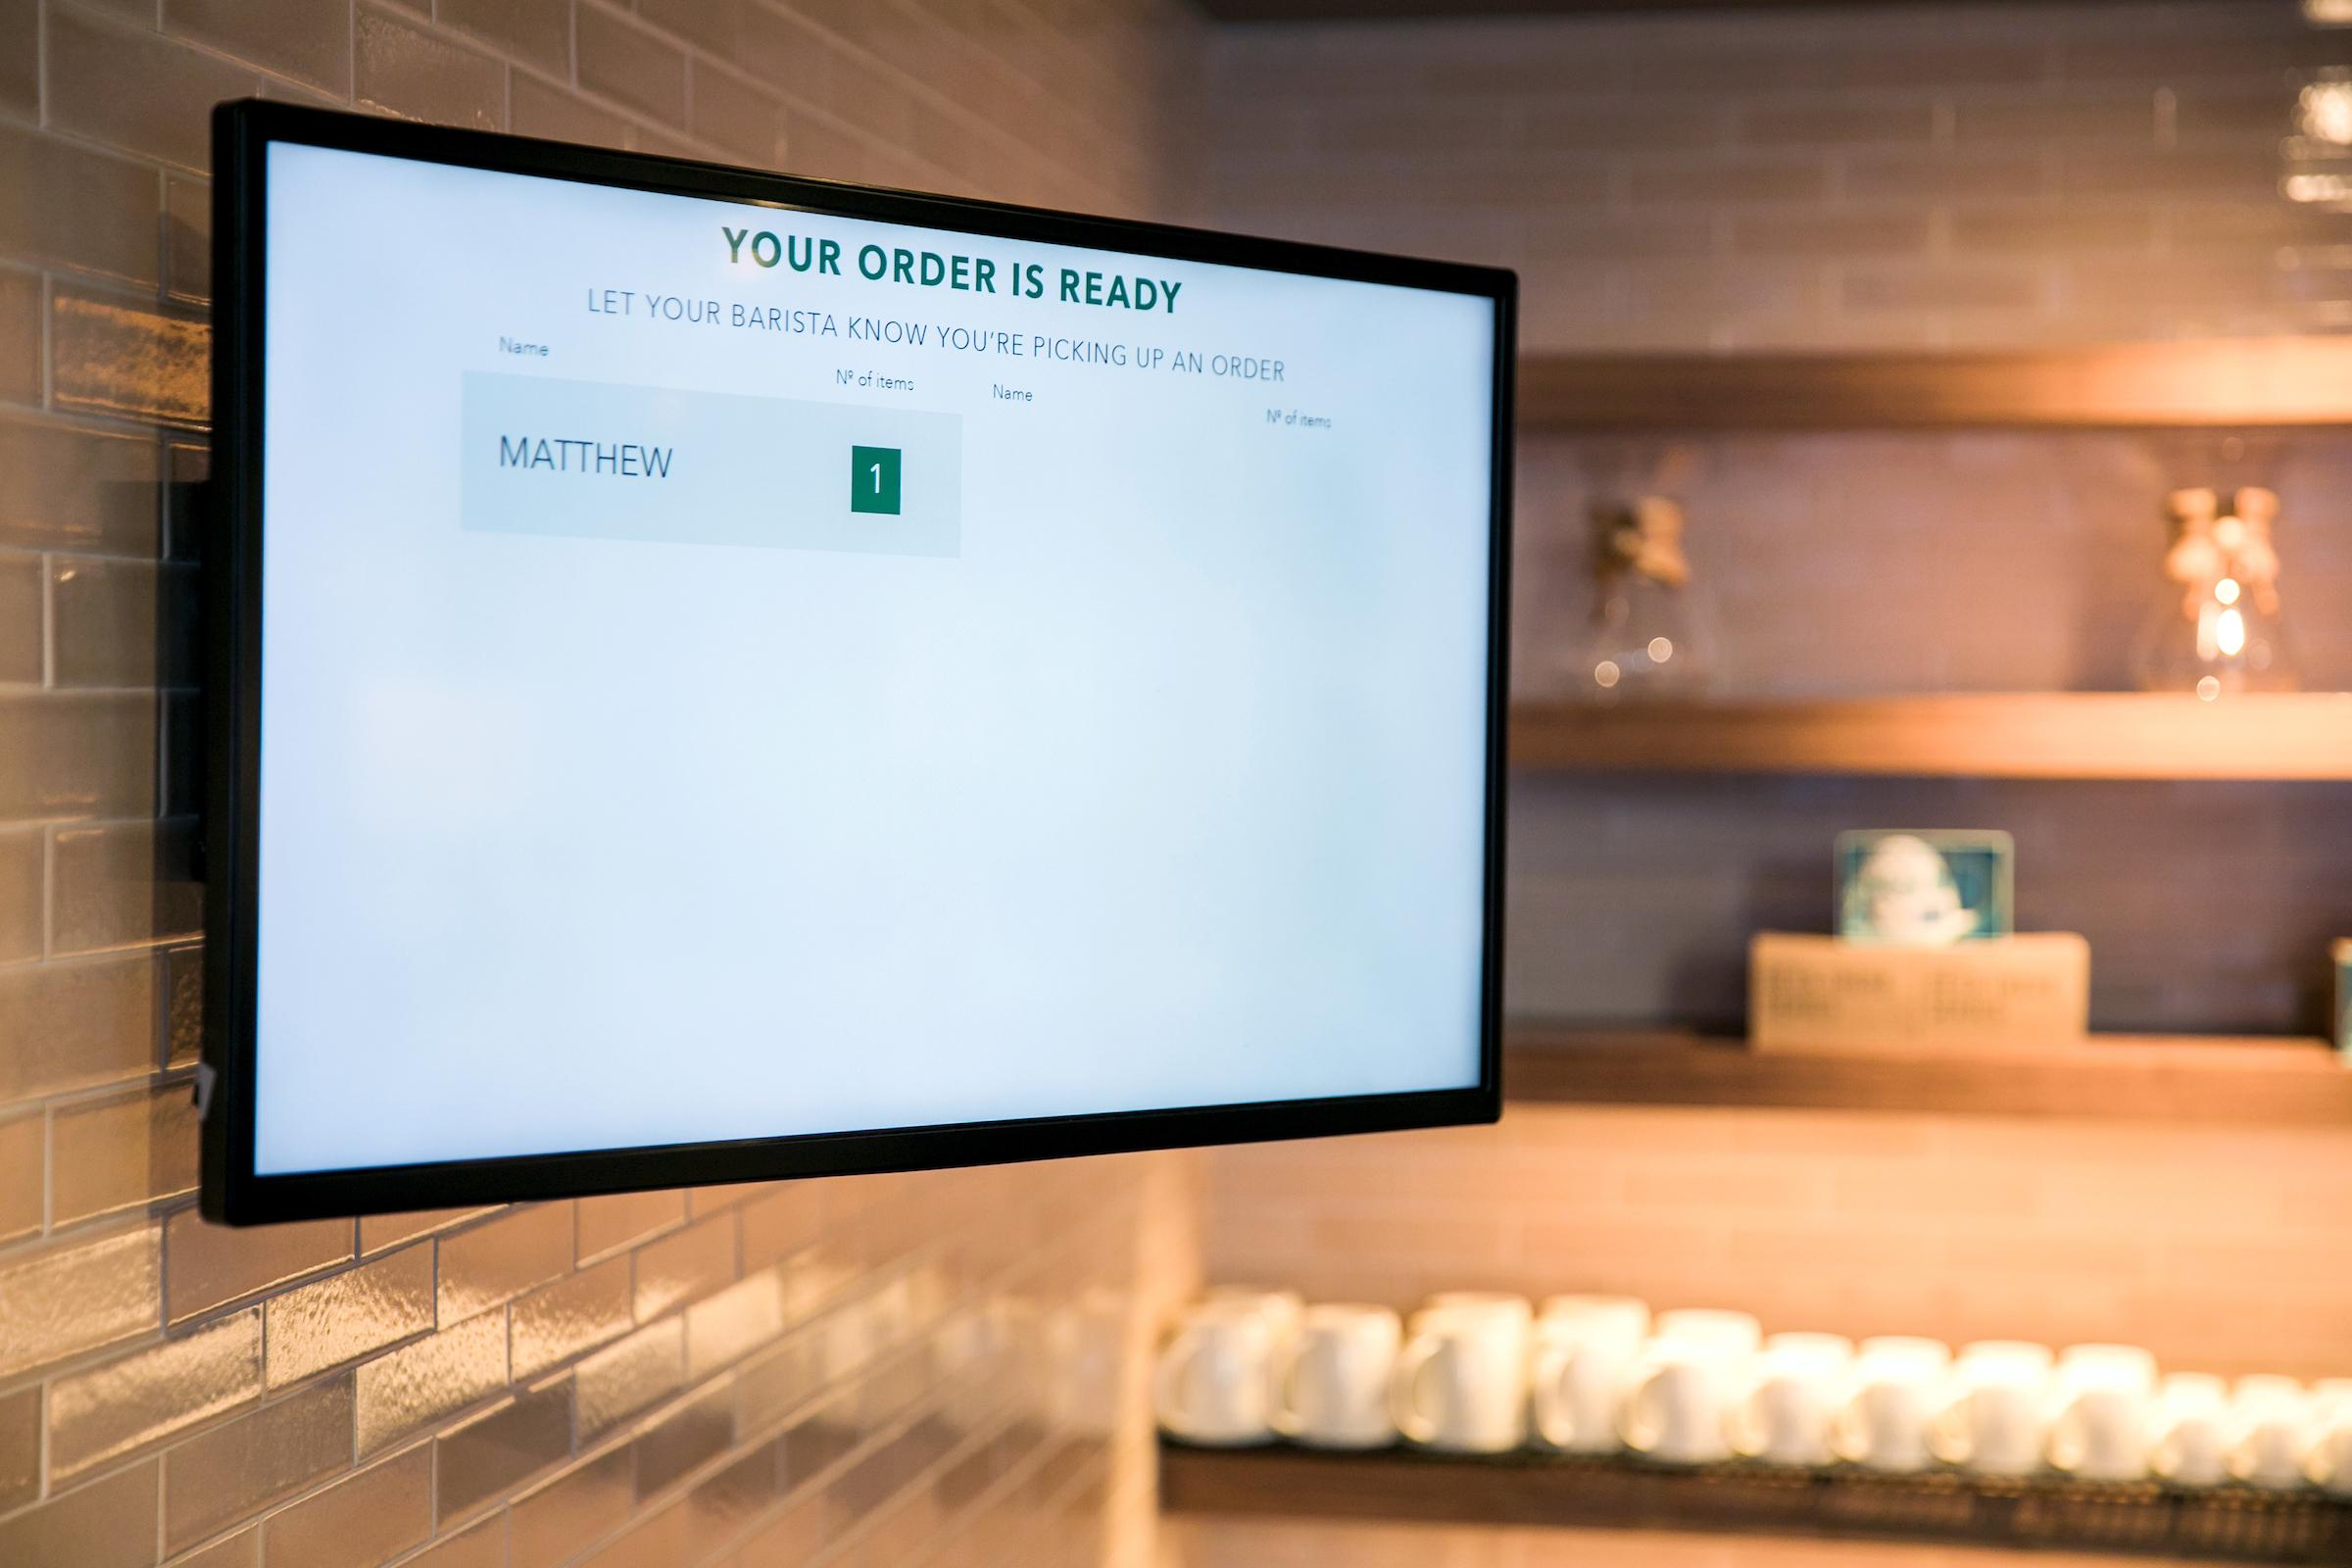 In order to retrieve your drinks, all you have to do is check out a sign in the store.{ }(Image: Joshua Trujillo, Starbucks)